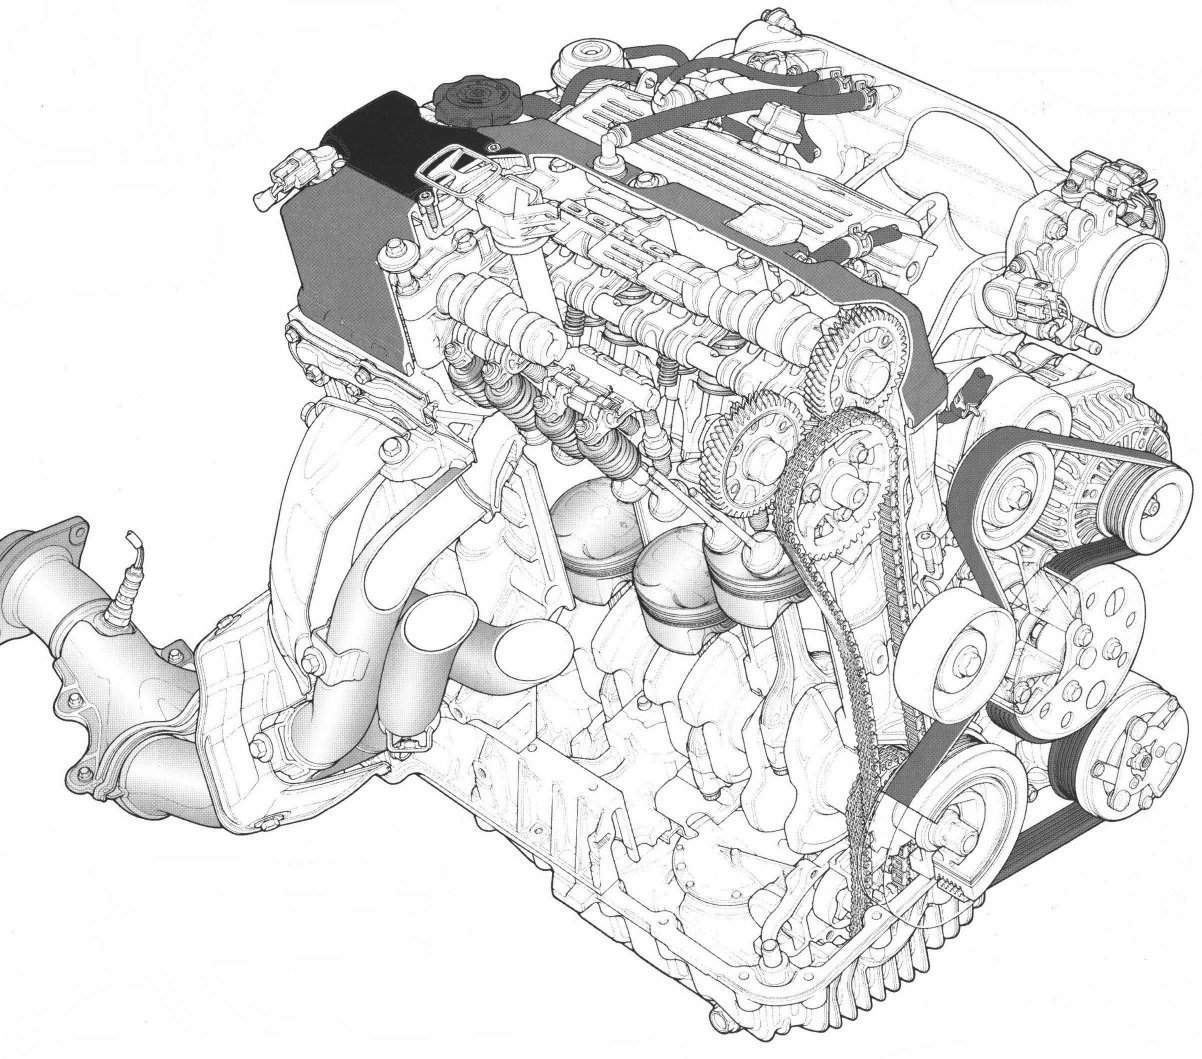 tom u0026 39 s honda s2000 blog  some cool cutaways